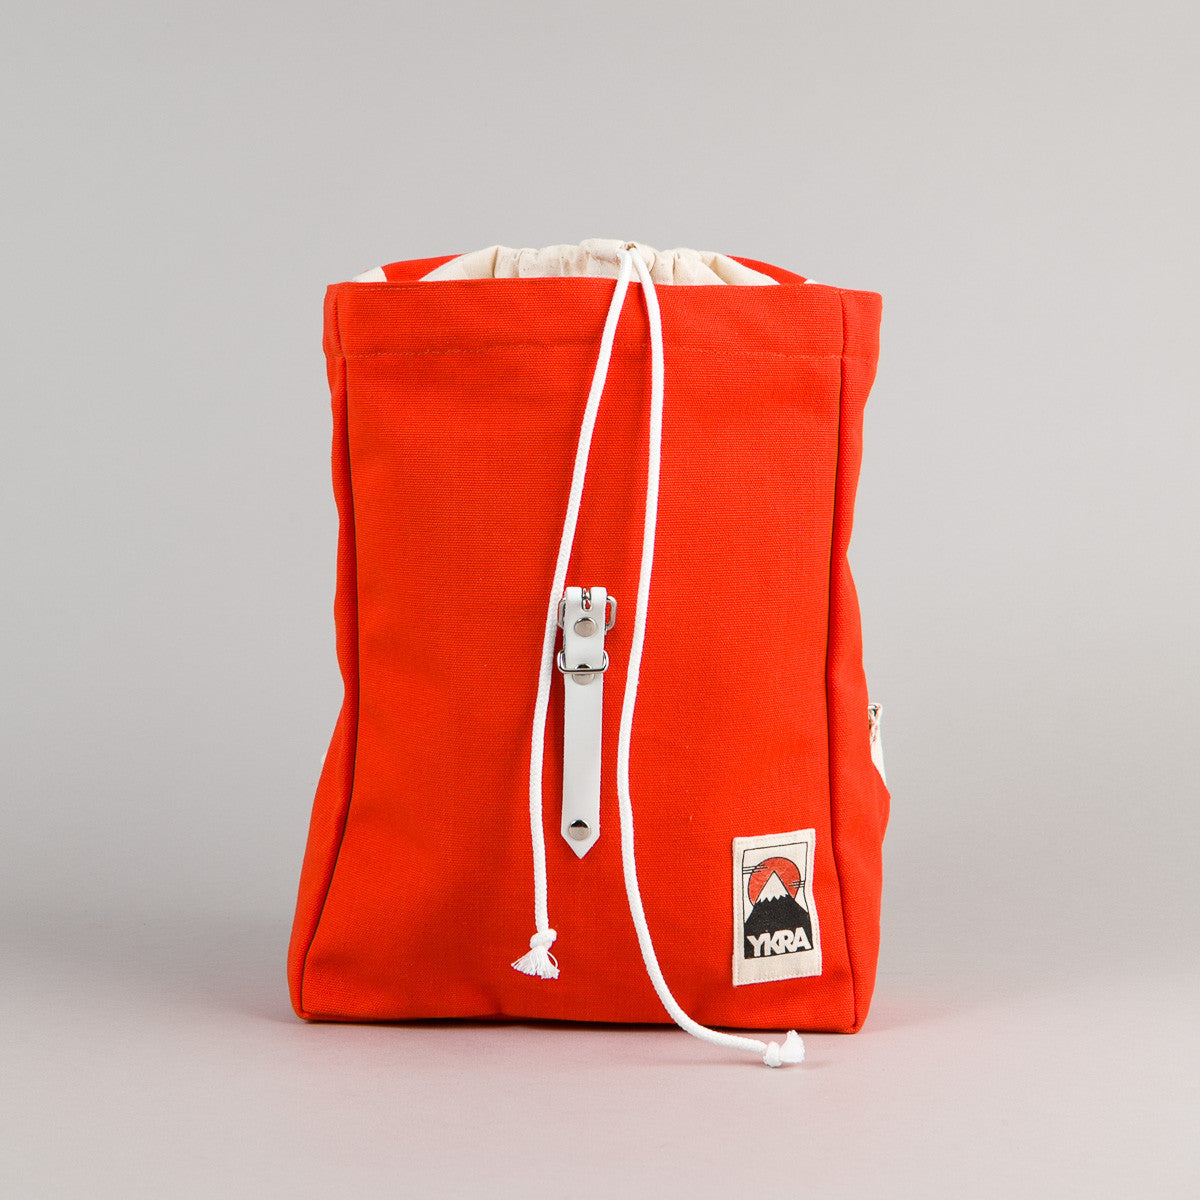 YKRA Scout Backpack - Orange